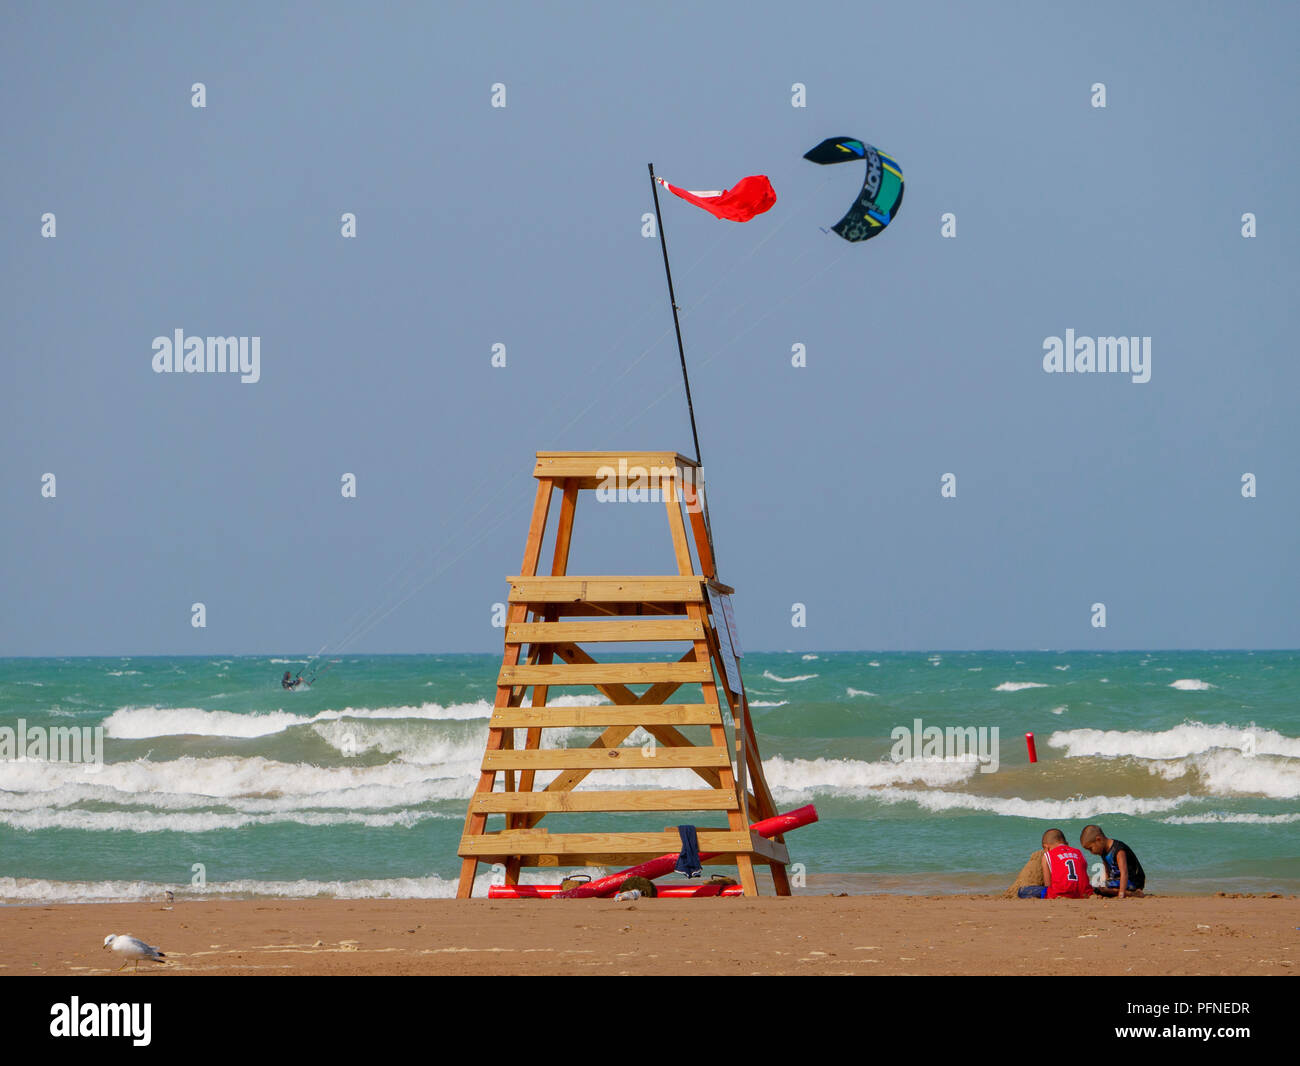 Chicago, Illinois, USA. 21st August 2018. A red flag indicating unsafe swimming conditions flies from a lifeguard stand at Montrose Beach as two children play in the sand and a kite surfer speeds by. Stiff northeast winds whipped up surf on Lake Michigan, bringing out kayakers, kite surfers and wave watchers. Credit: Todd Bannor/Alamy Live News Stock Photo